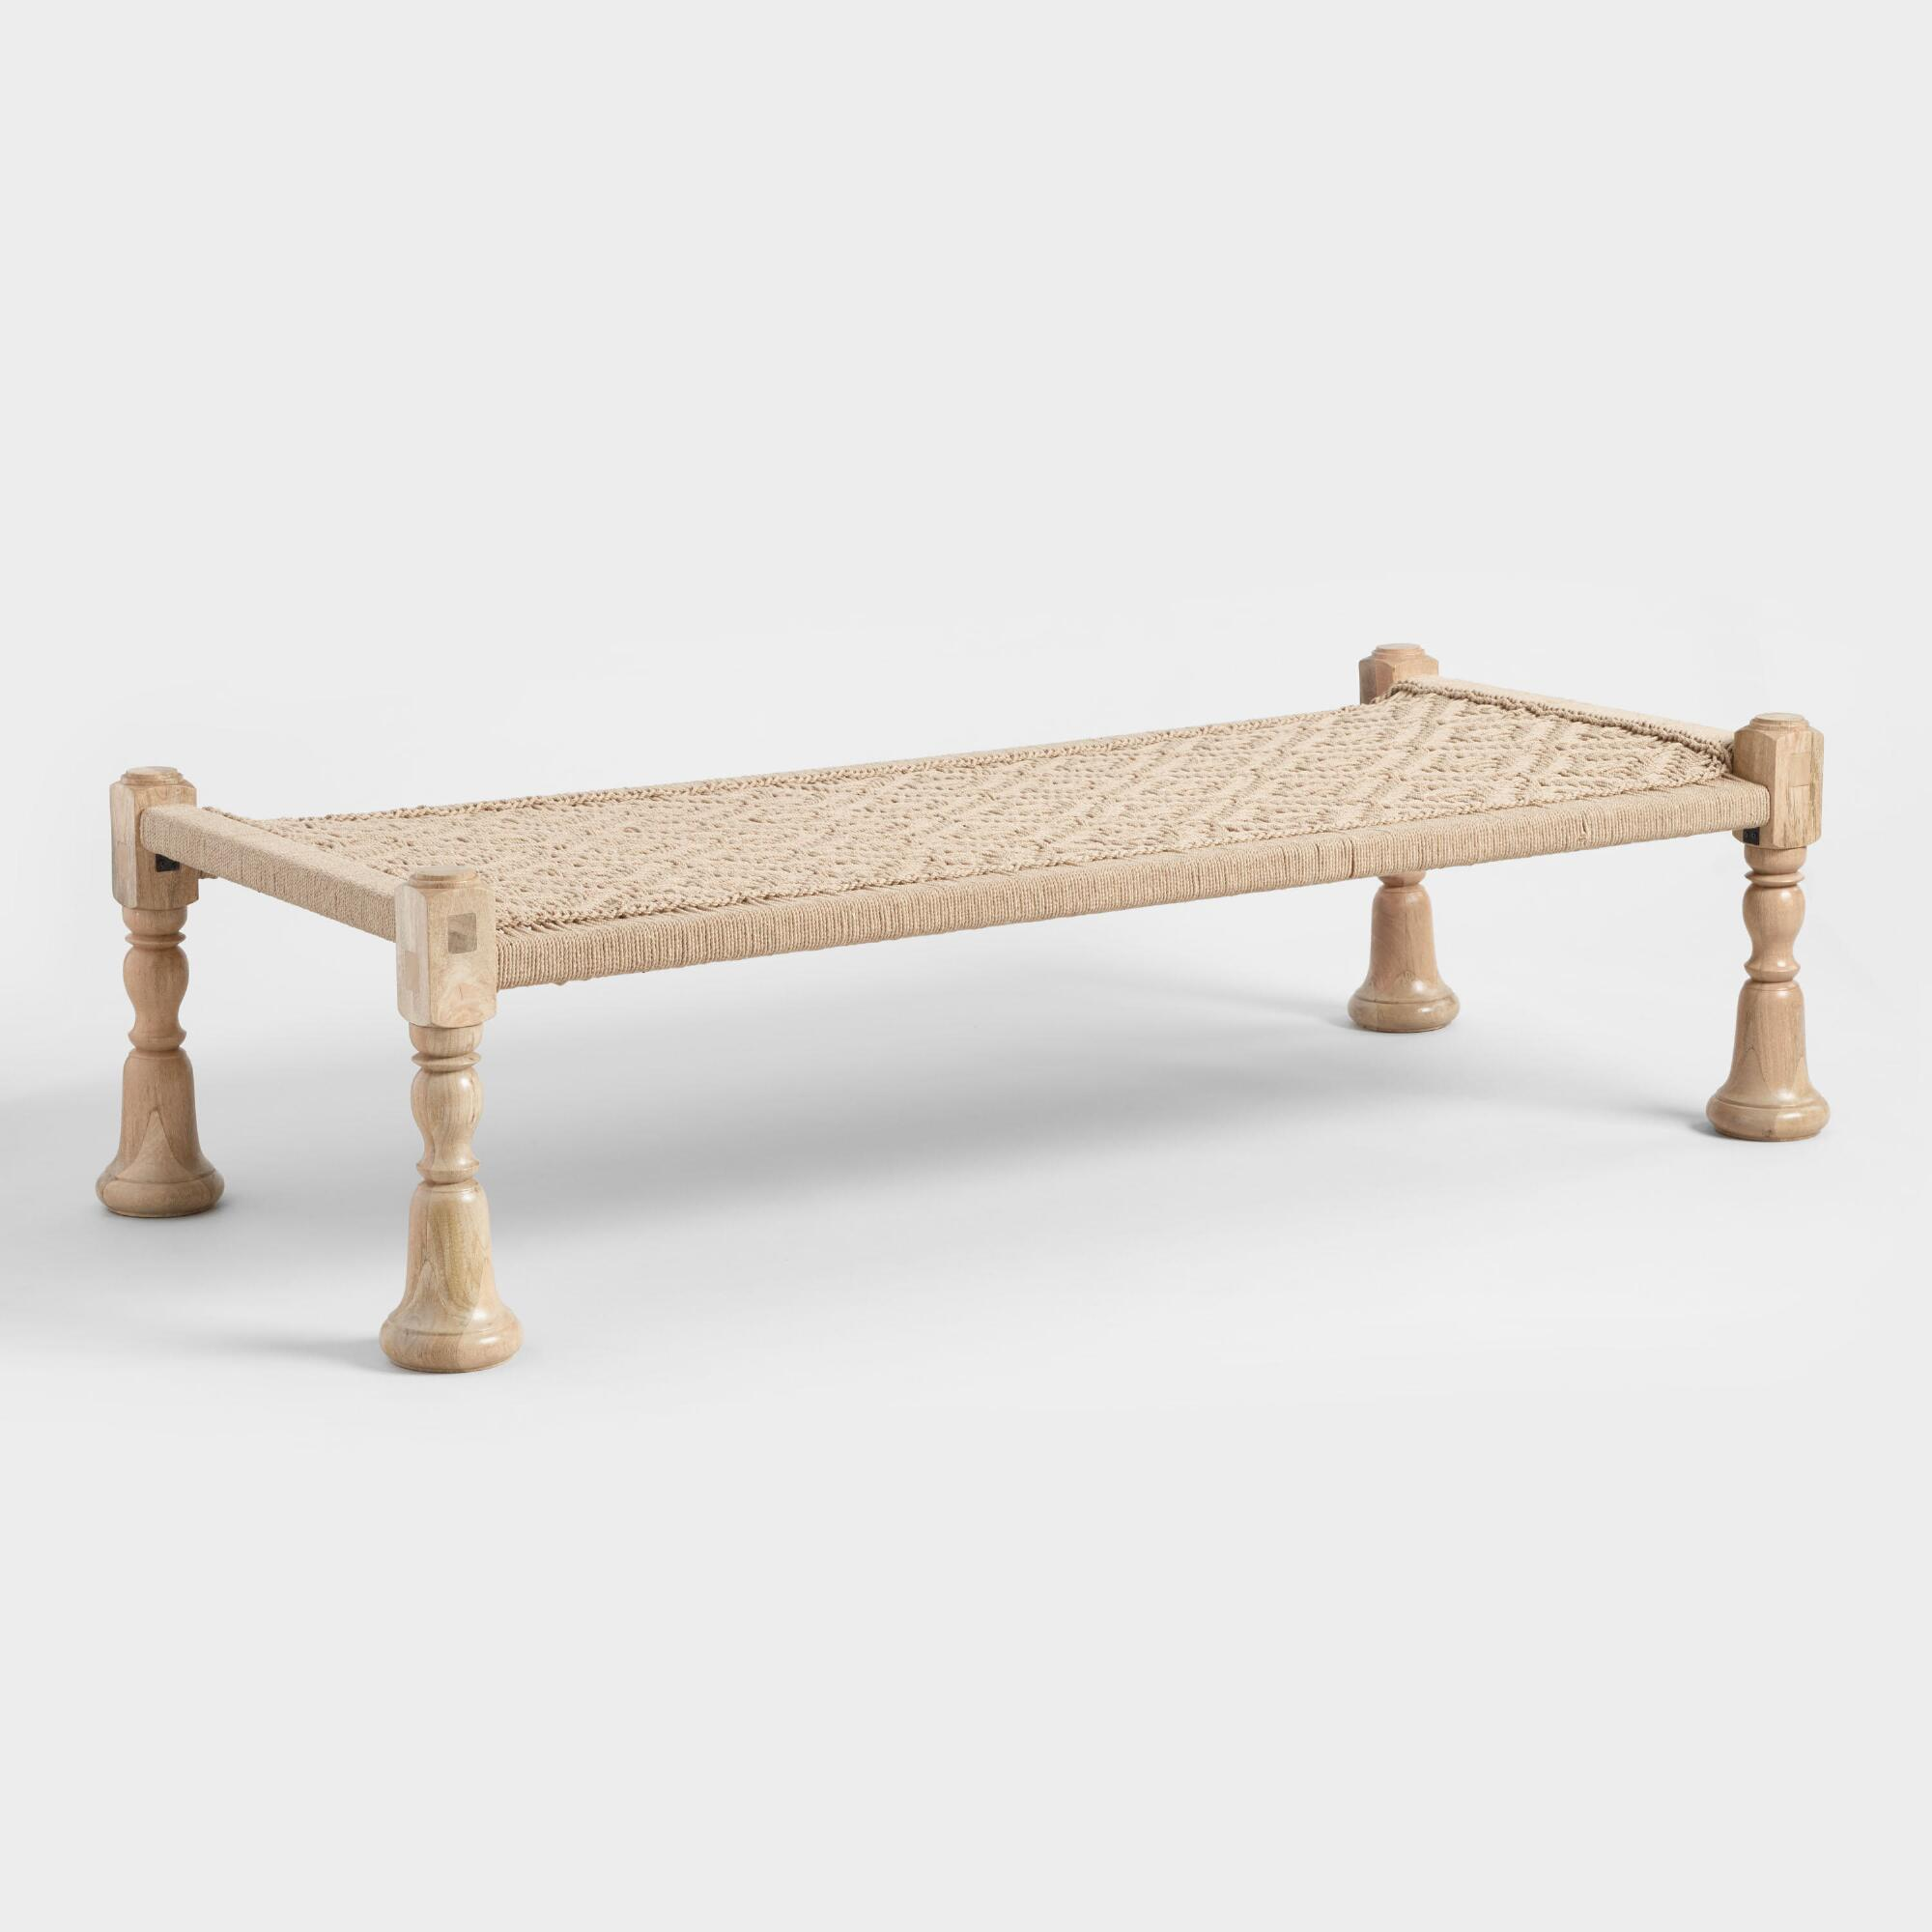 Jute and Wood Charpoy Bench by World Market